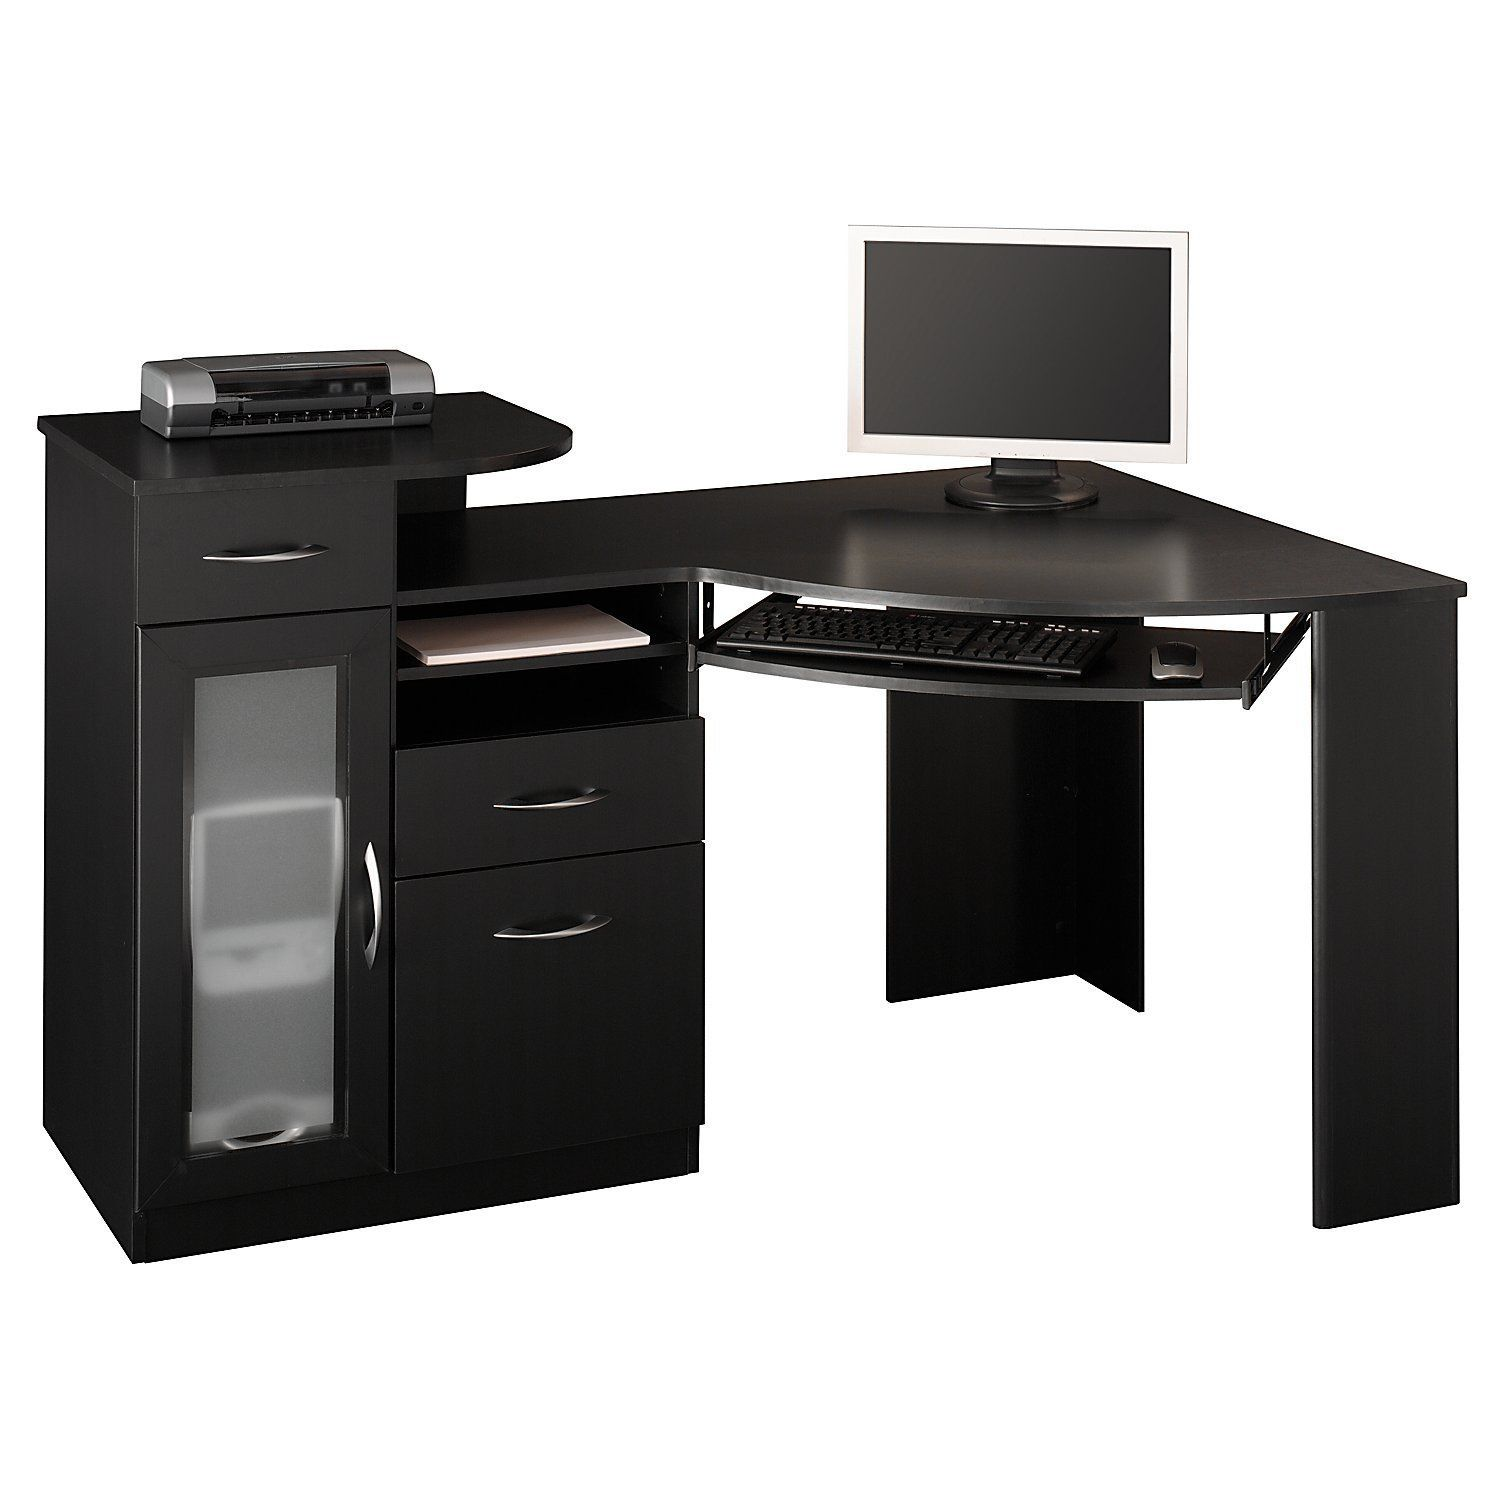 aspen furniture office america the desk and in one phoenix from cabinet home drawers best of choices with